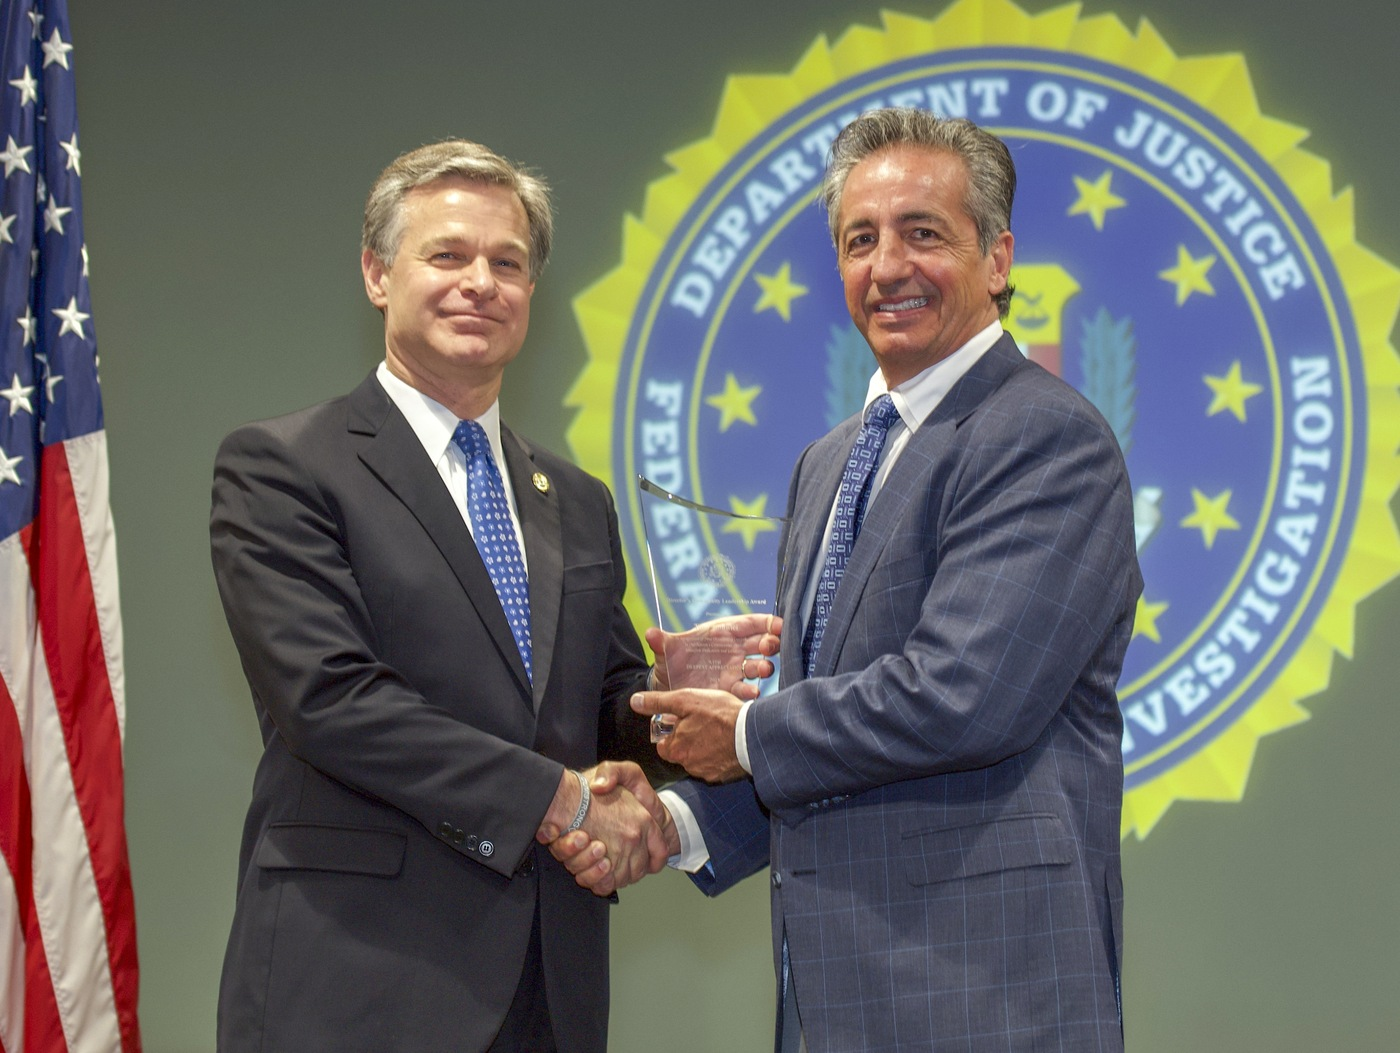 FBI Director Christopher Wray presents Las Vegas Division recipient Tony Bonnici with the Director's Community Leadership Award (DCLA) at a ceremony at FBI Headquarters on May 3, 2019.